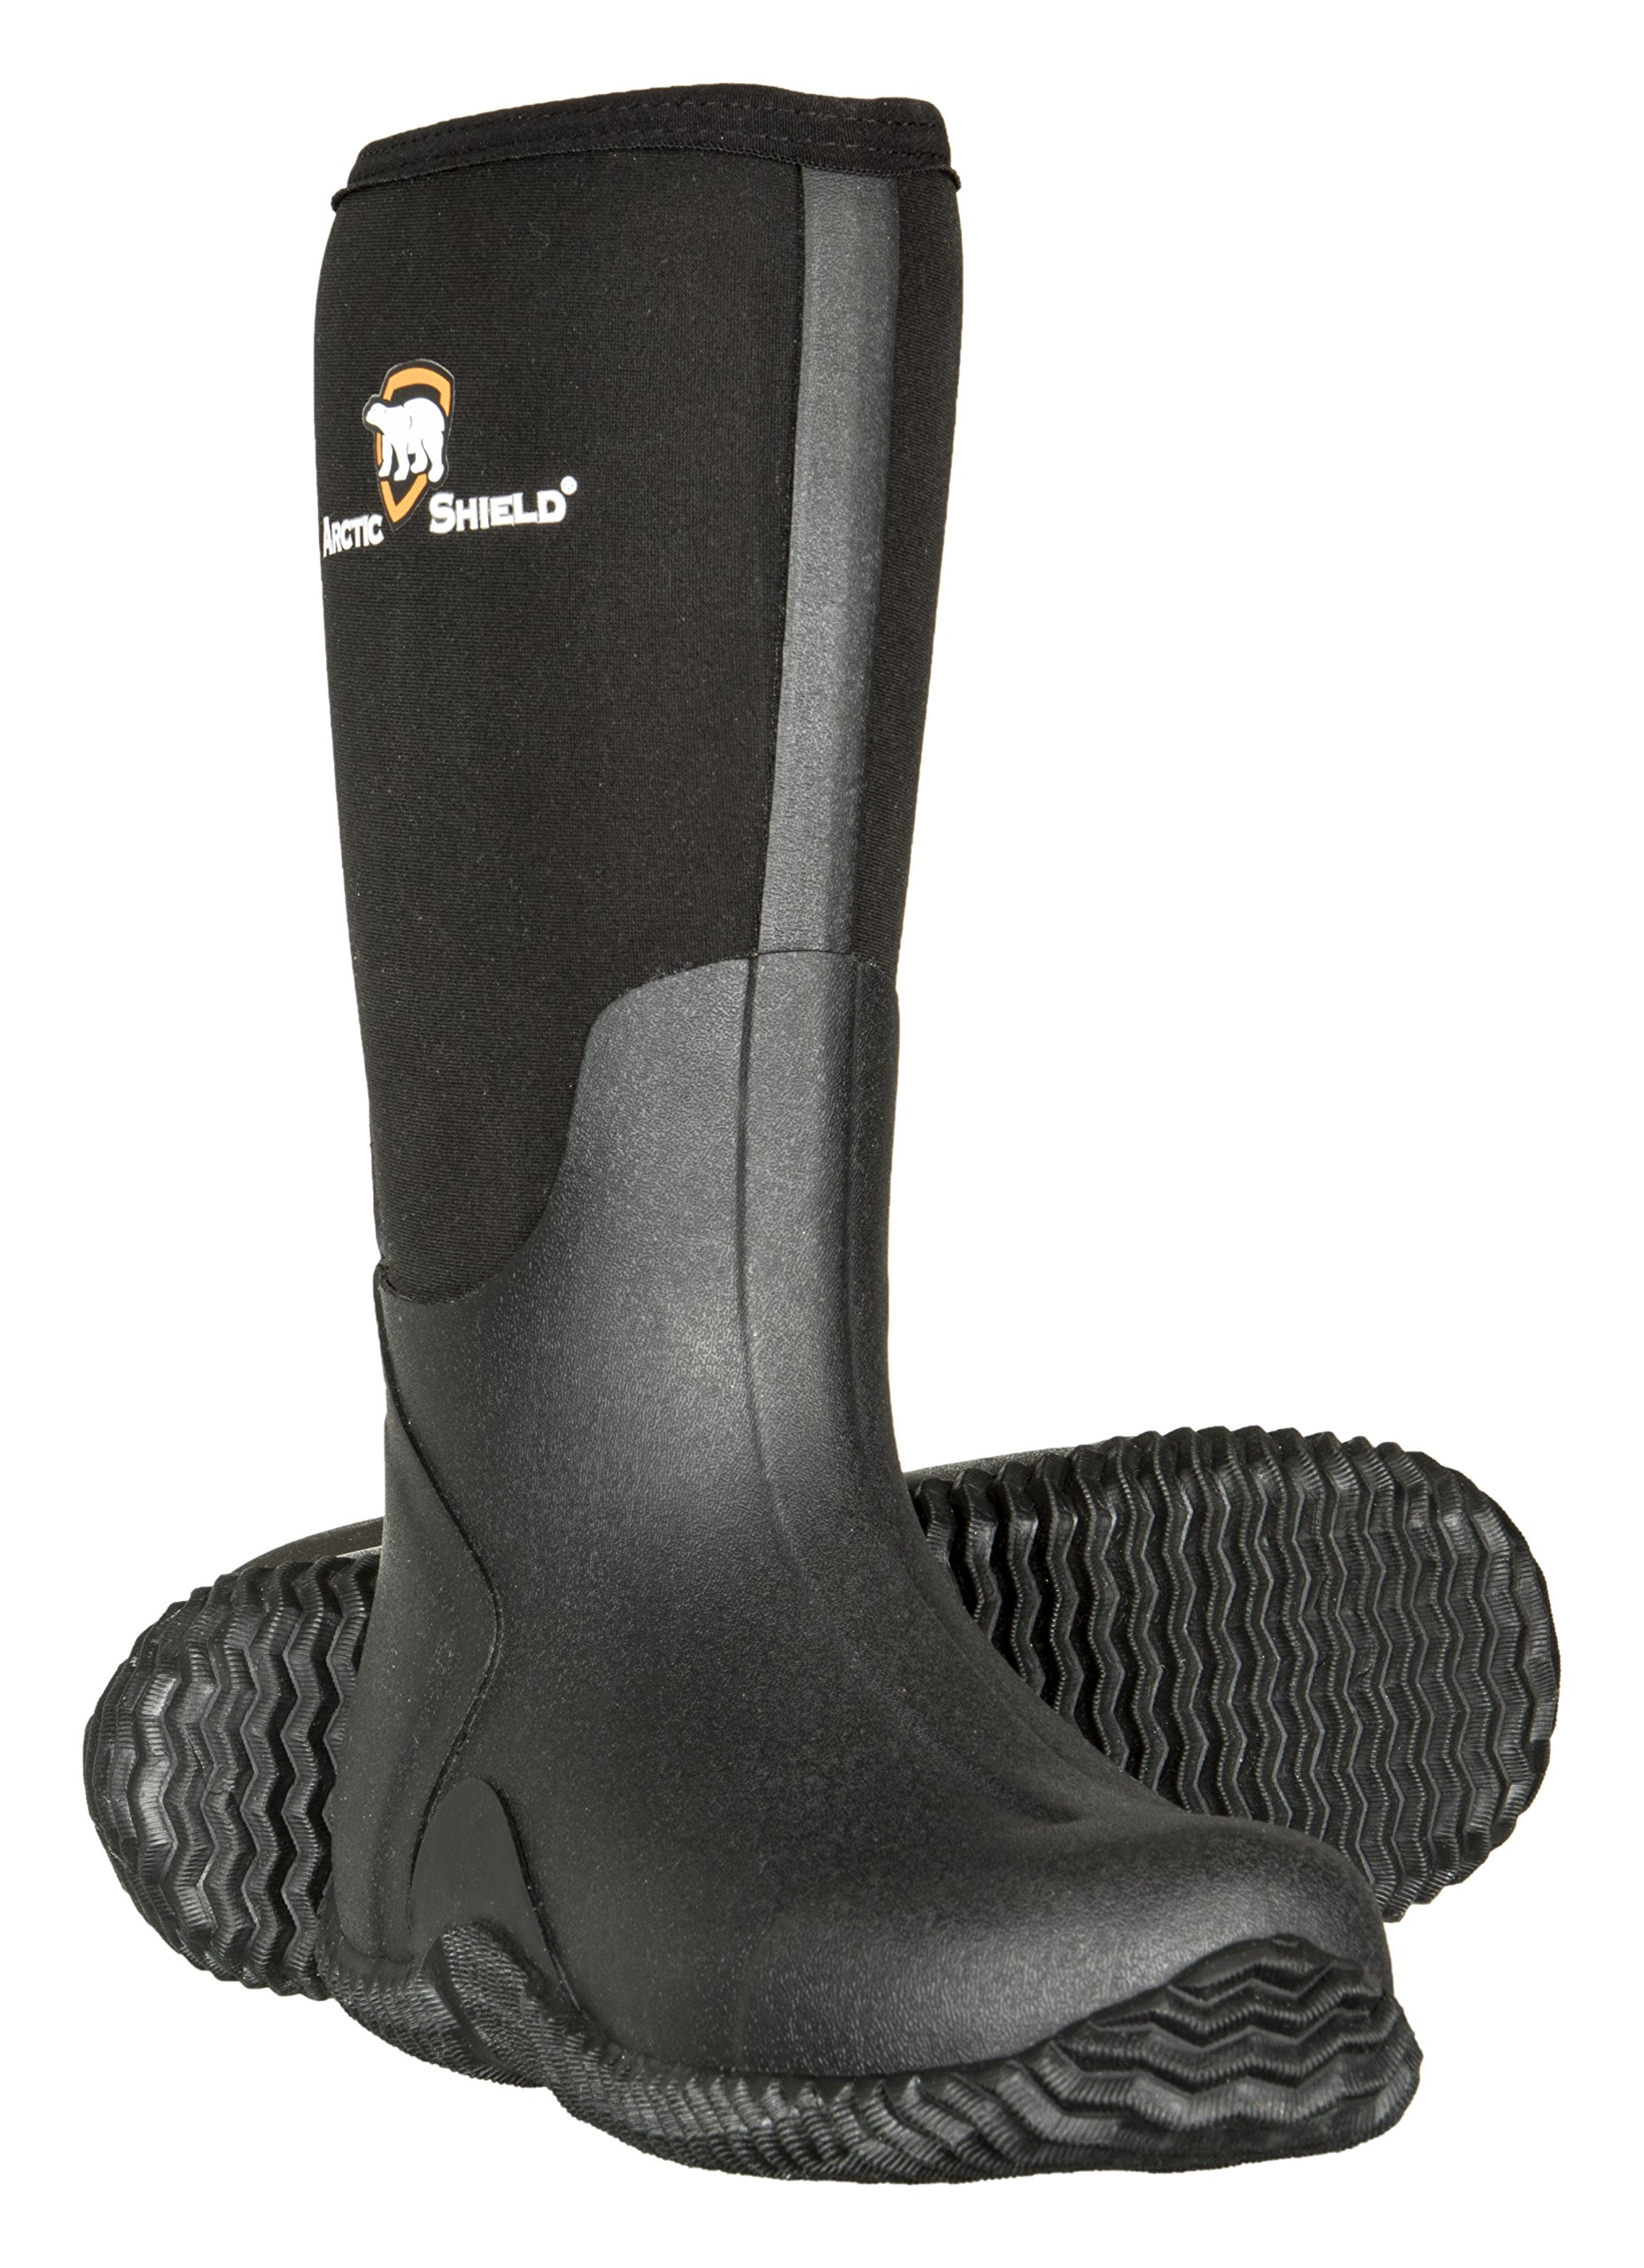 Mens Black Rubber Boots,Black,10 D(M) US by ArcticShield